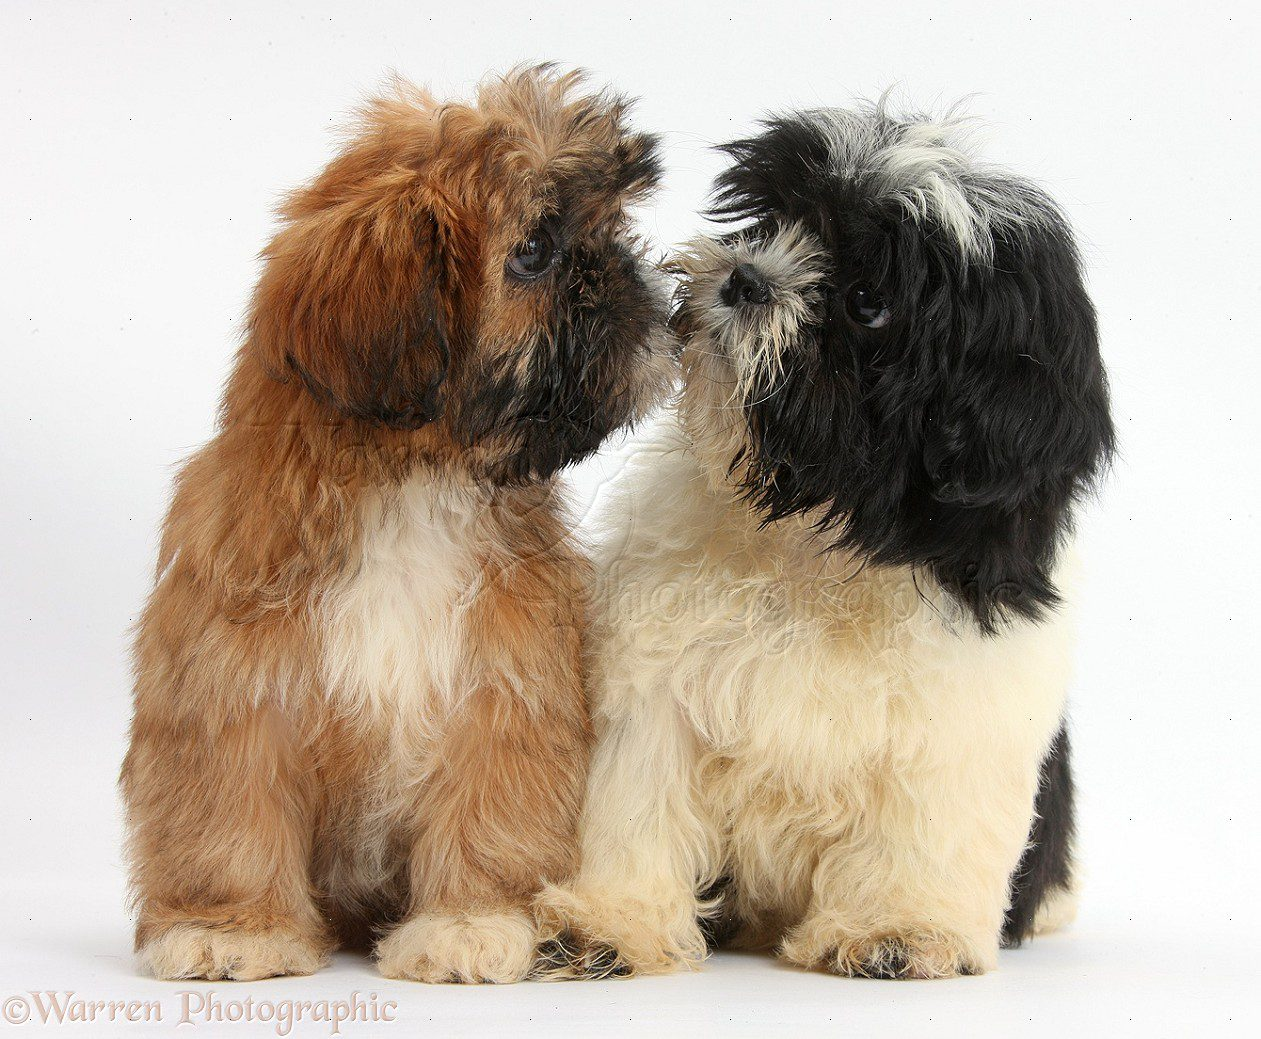 Brown and black-and-white Shih-tzu puppies kissing